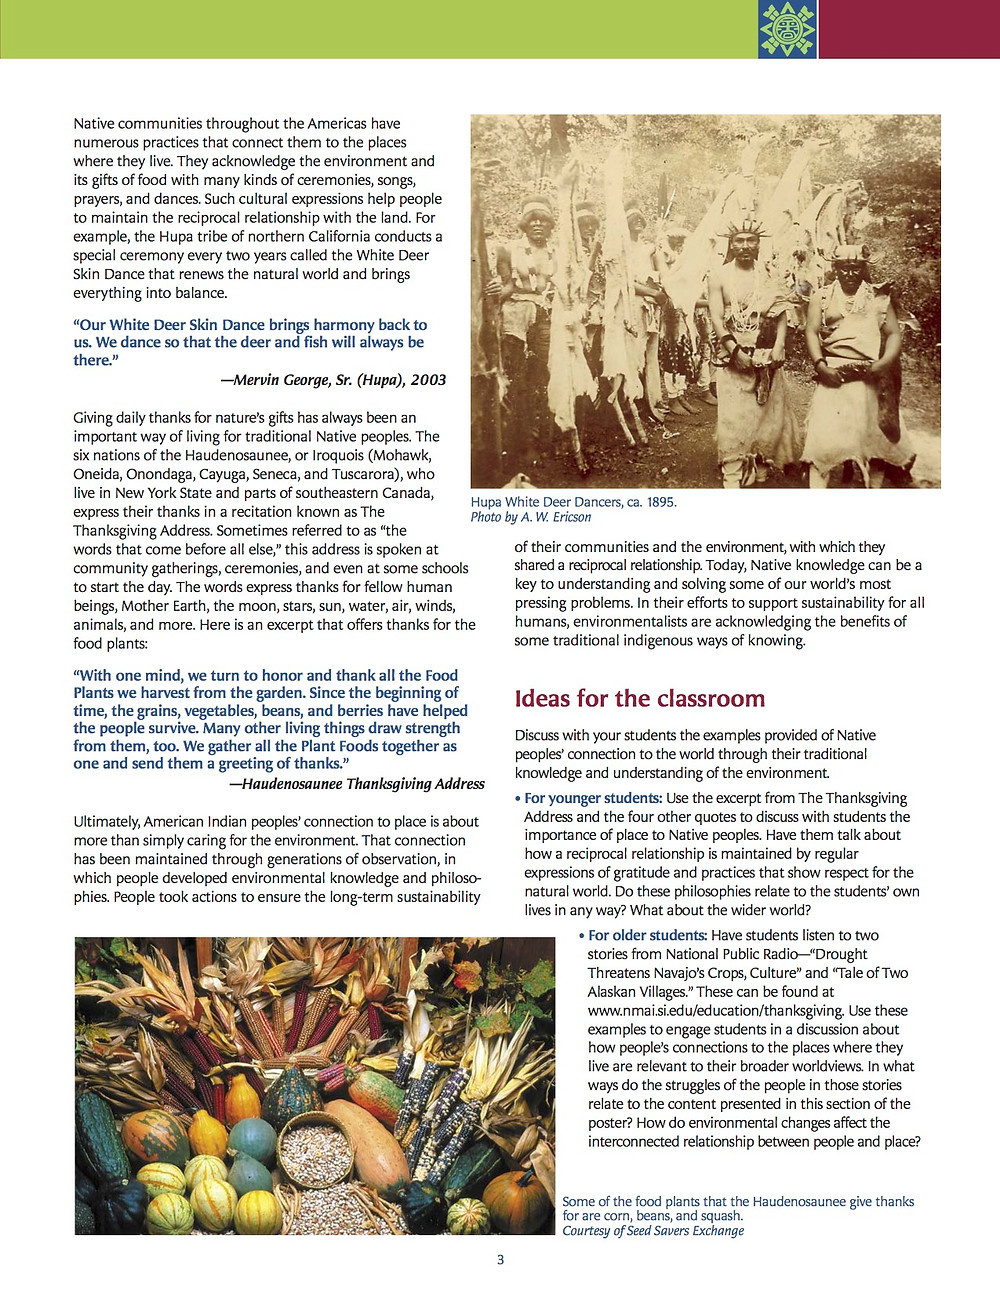 American Indian Perspectives on Thanksgiving poster page 4